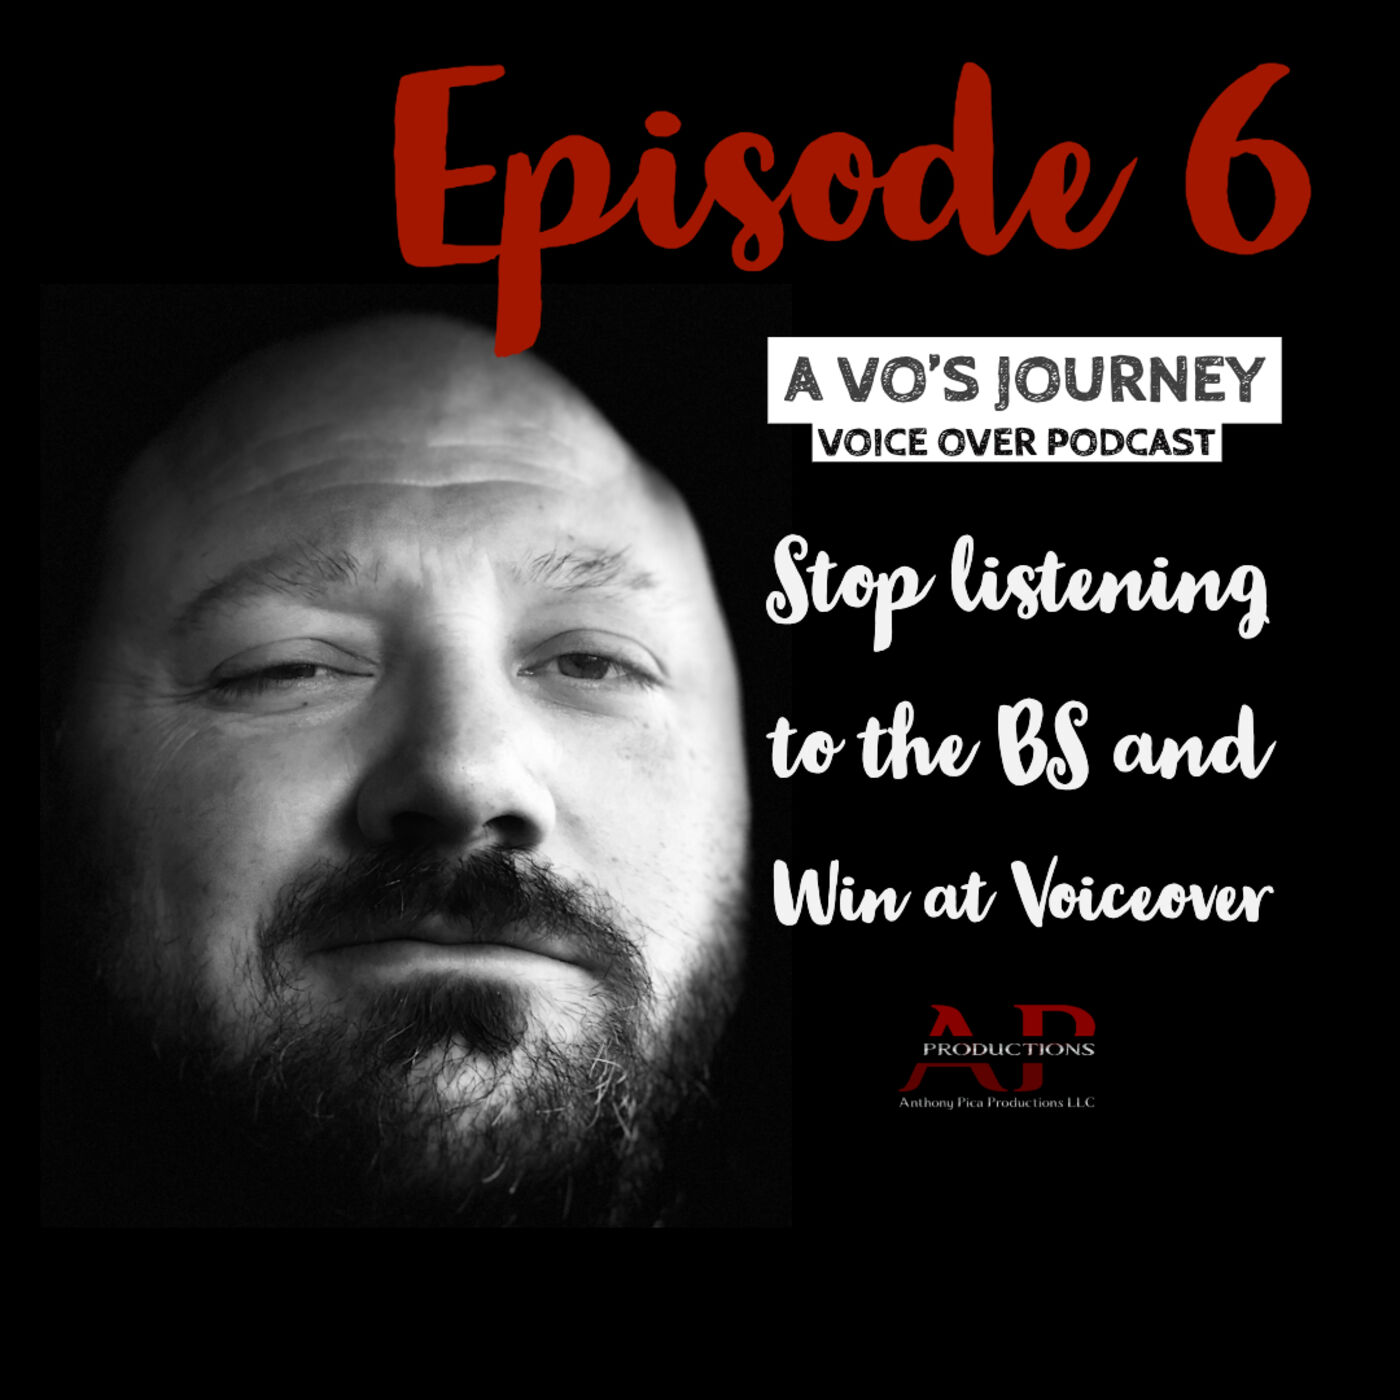 Ep. 6: Stop listening to the BS and Win at Voiceover